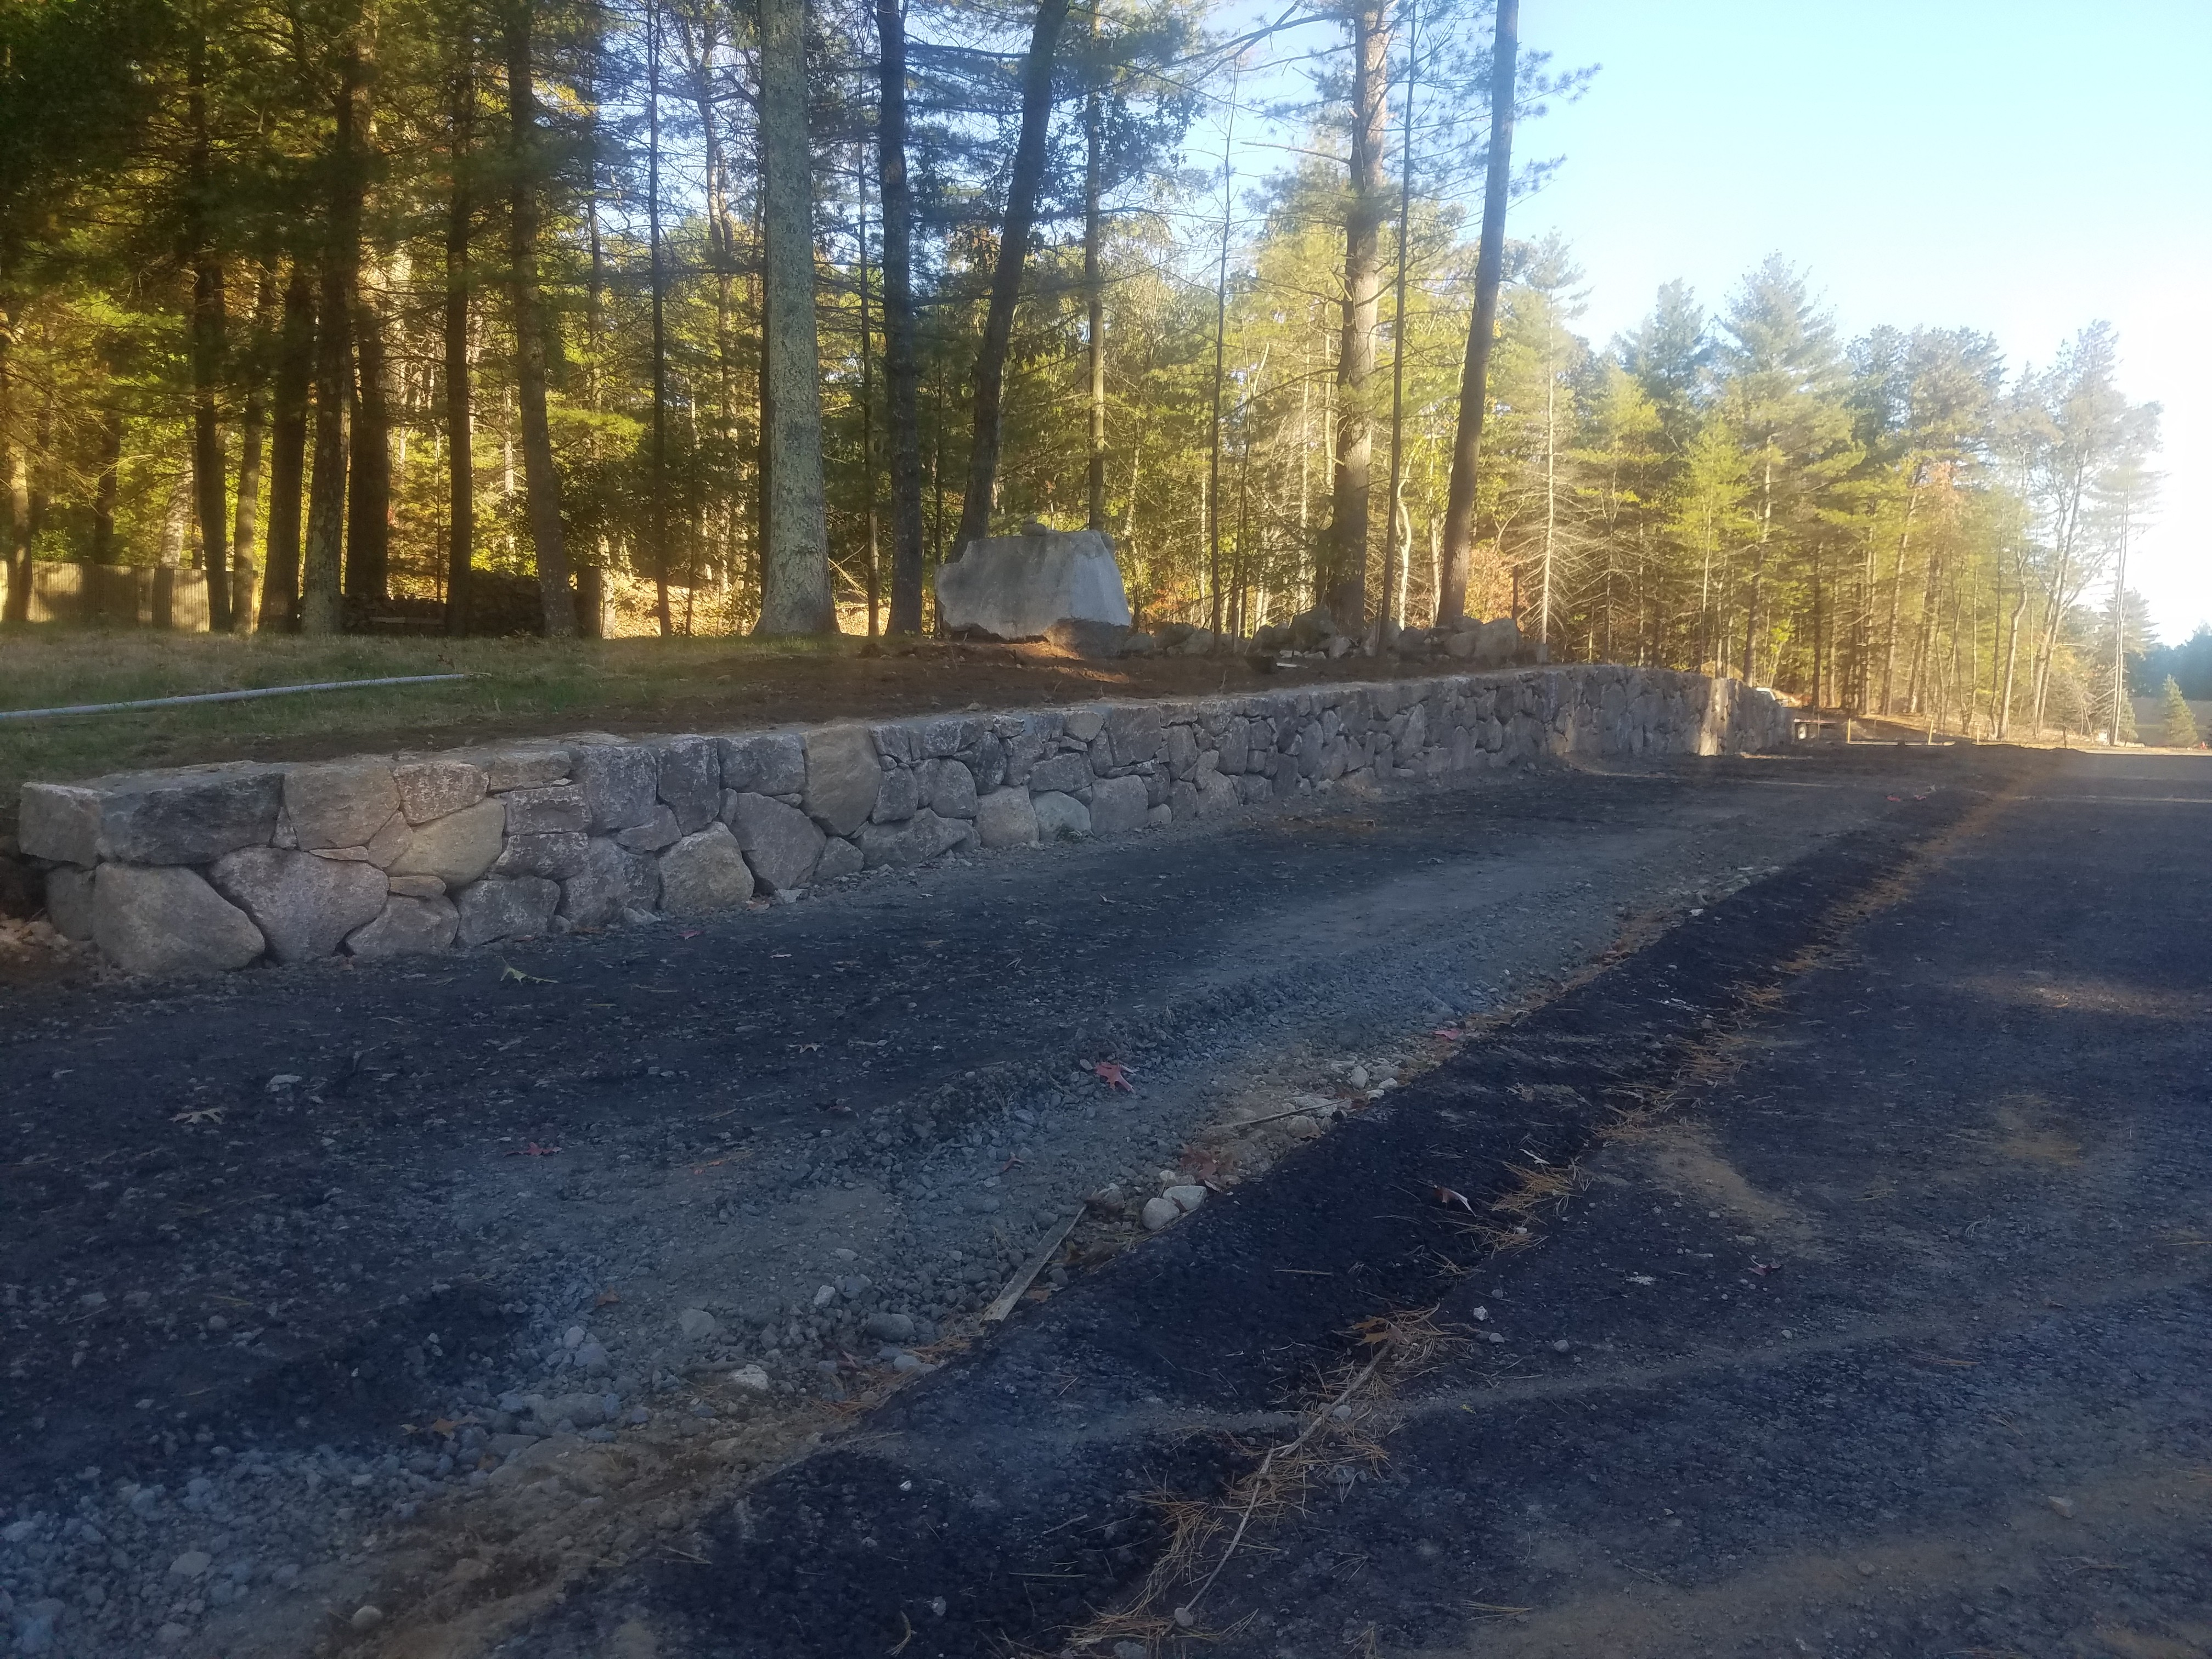 Norfolk Retaining Wall - Completed 1